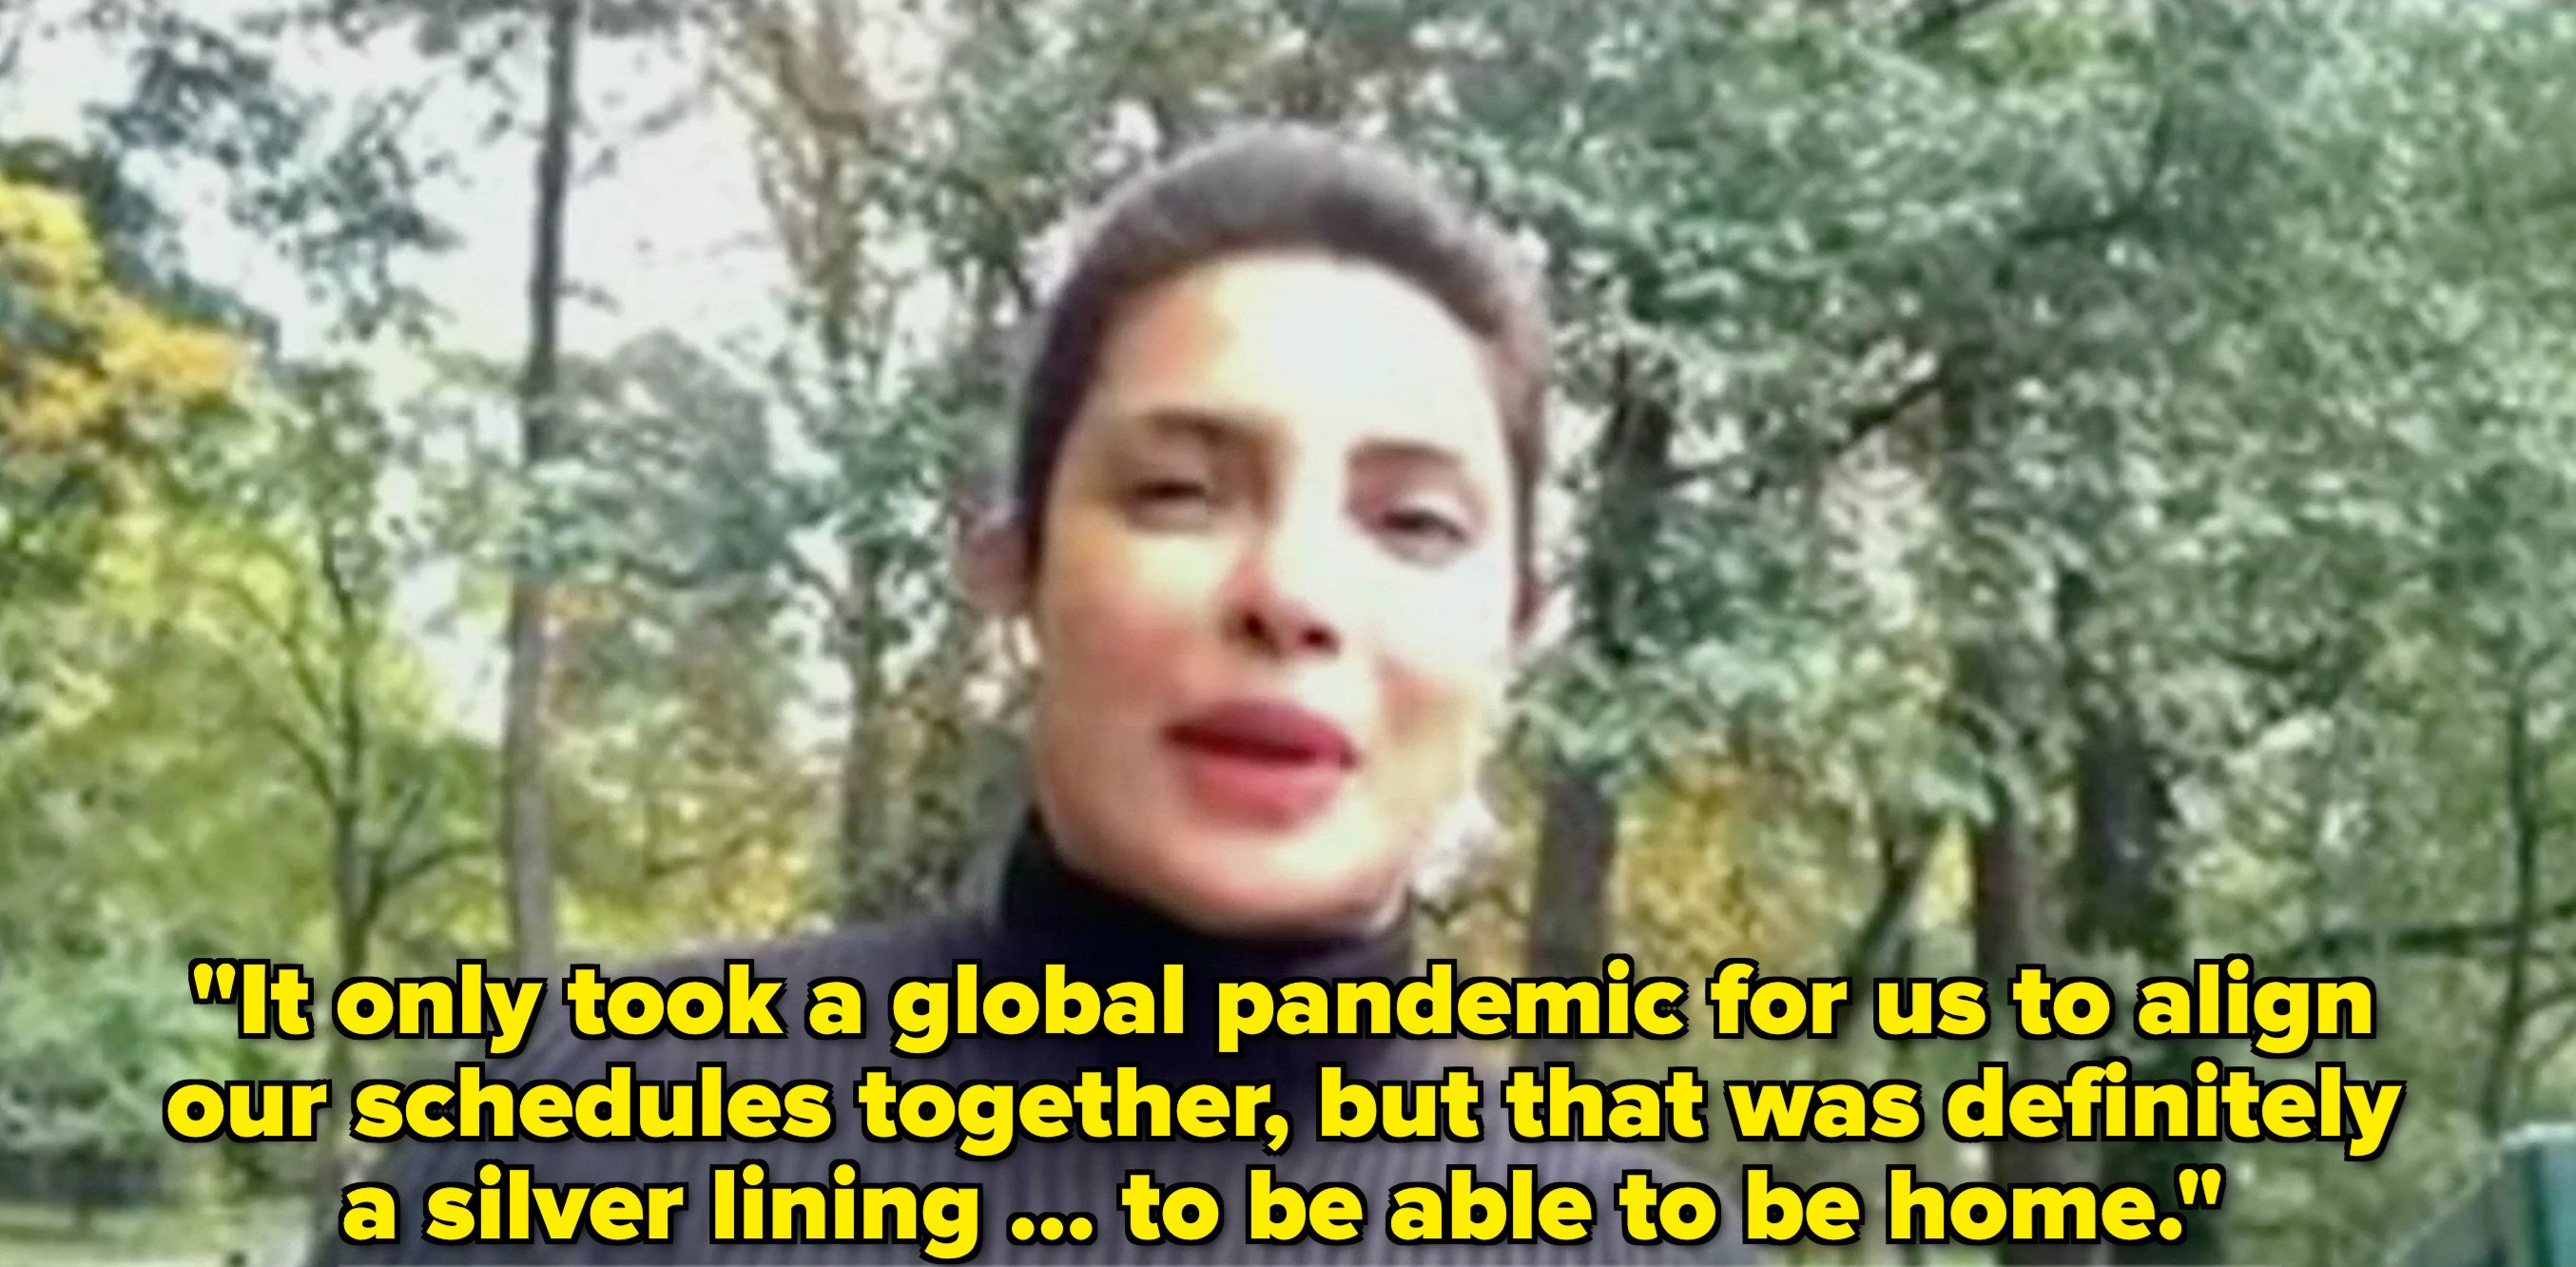 """Priyanka says, """"It only took a global pandemic for us to align our schedules together, but that was definitely a silver lining is to be able to be home"""""""